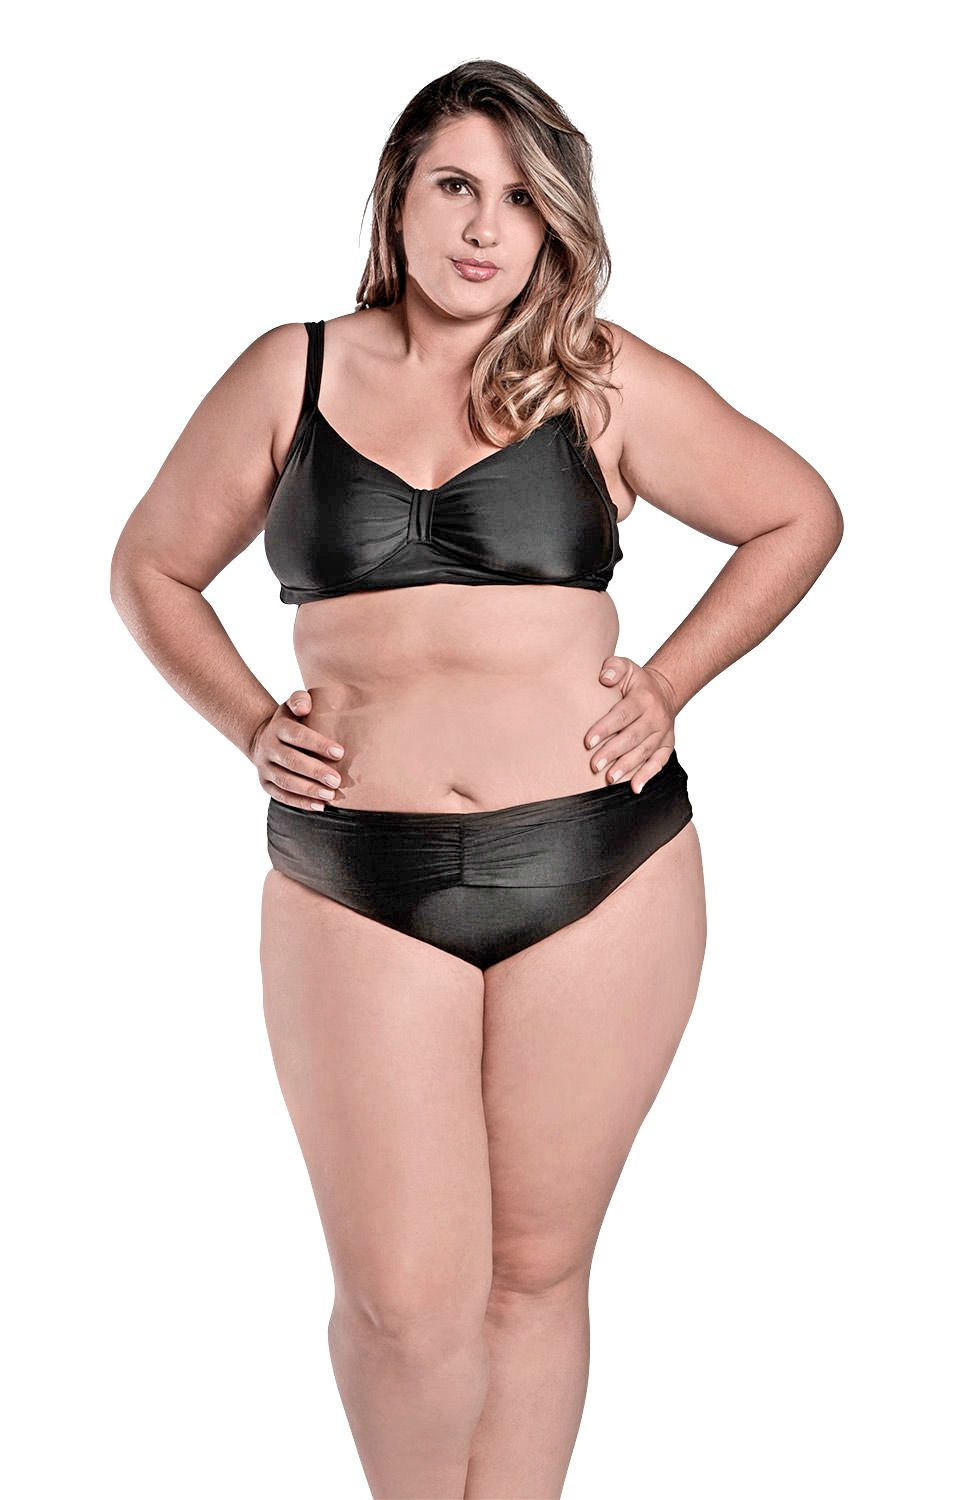 847849c9f Biquíni PLus Size Top Vanessa Preto - Stewardess ...